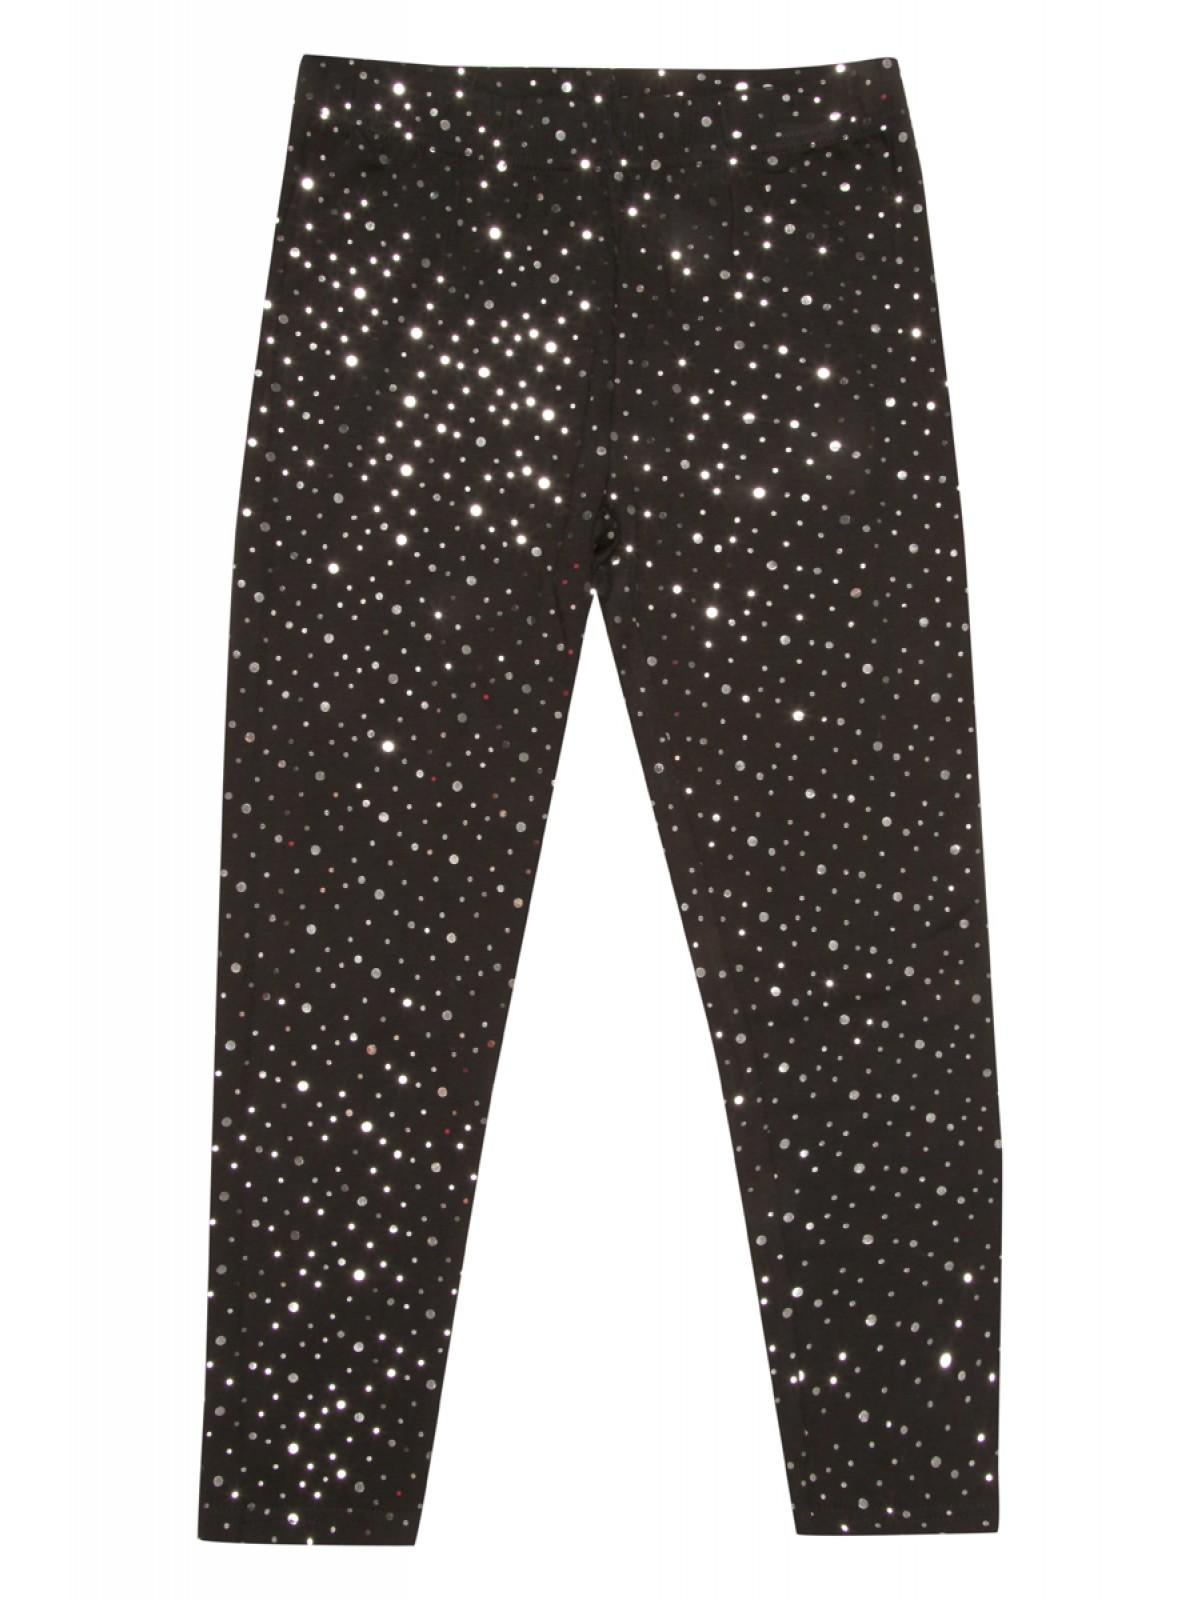 5629a4f8a98d3 Girls Younger Girls Sparkle Leggings | Peacocks